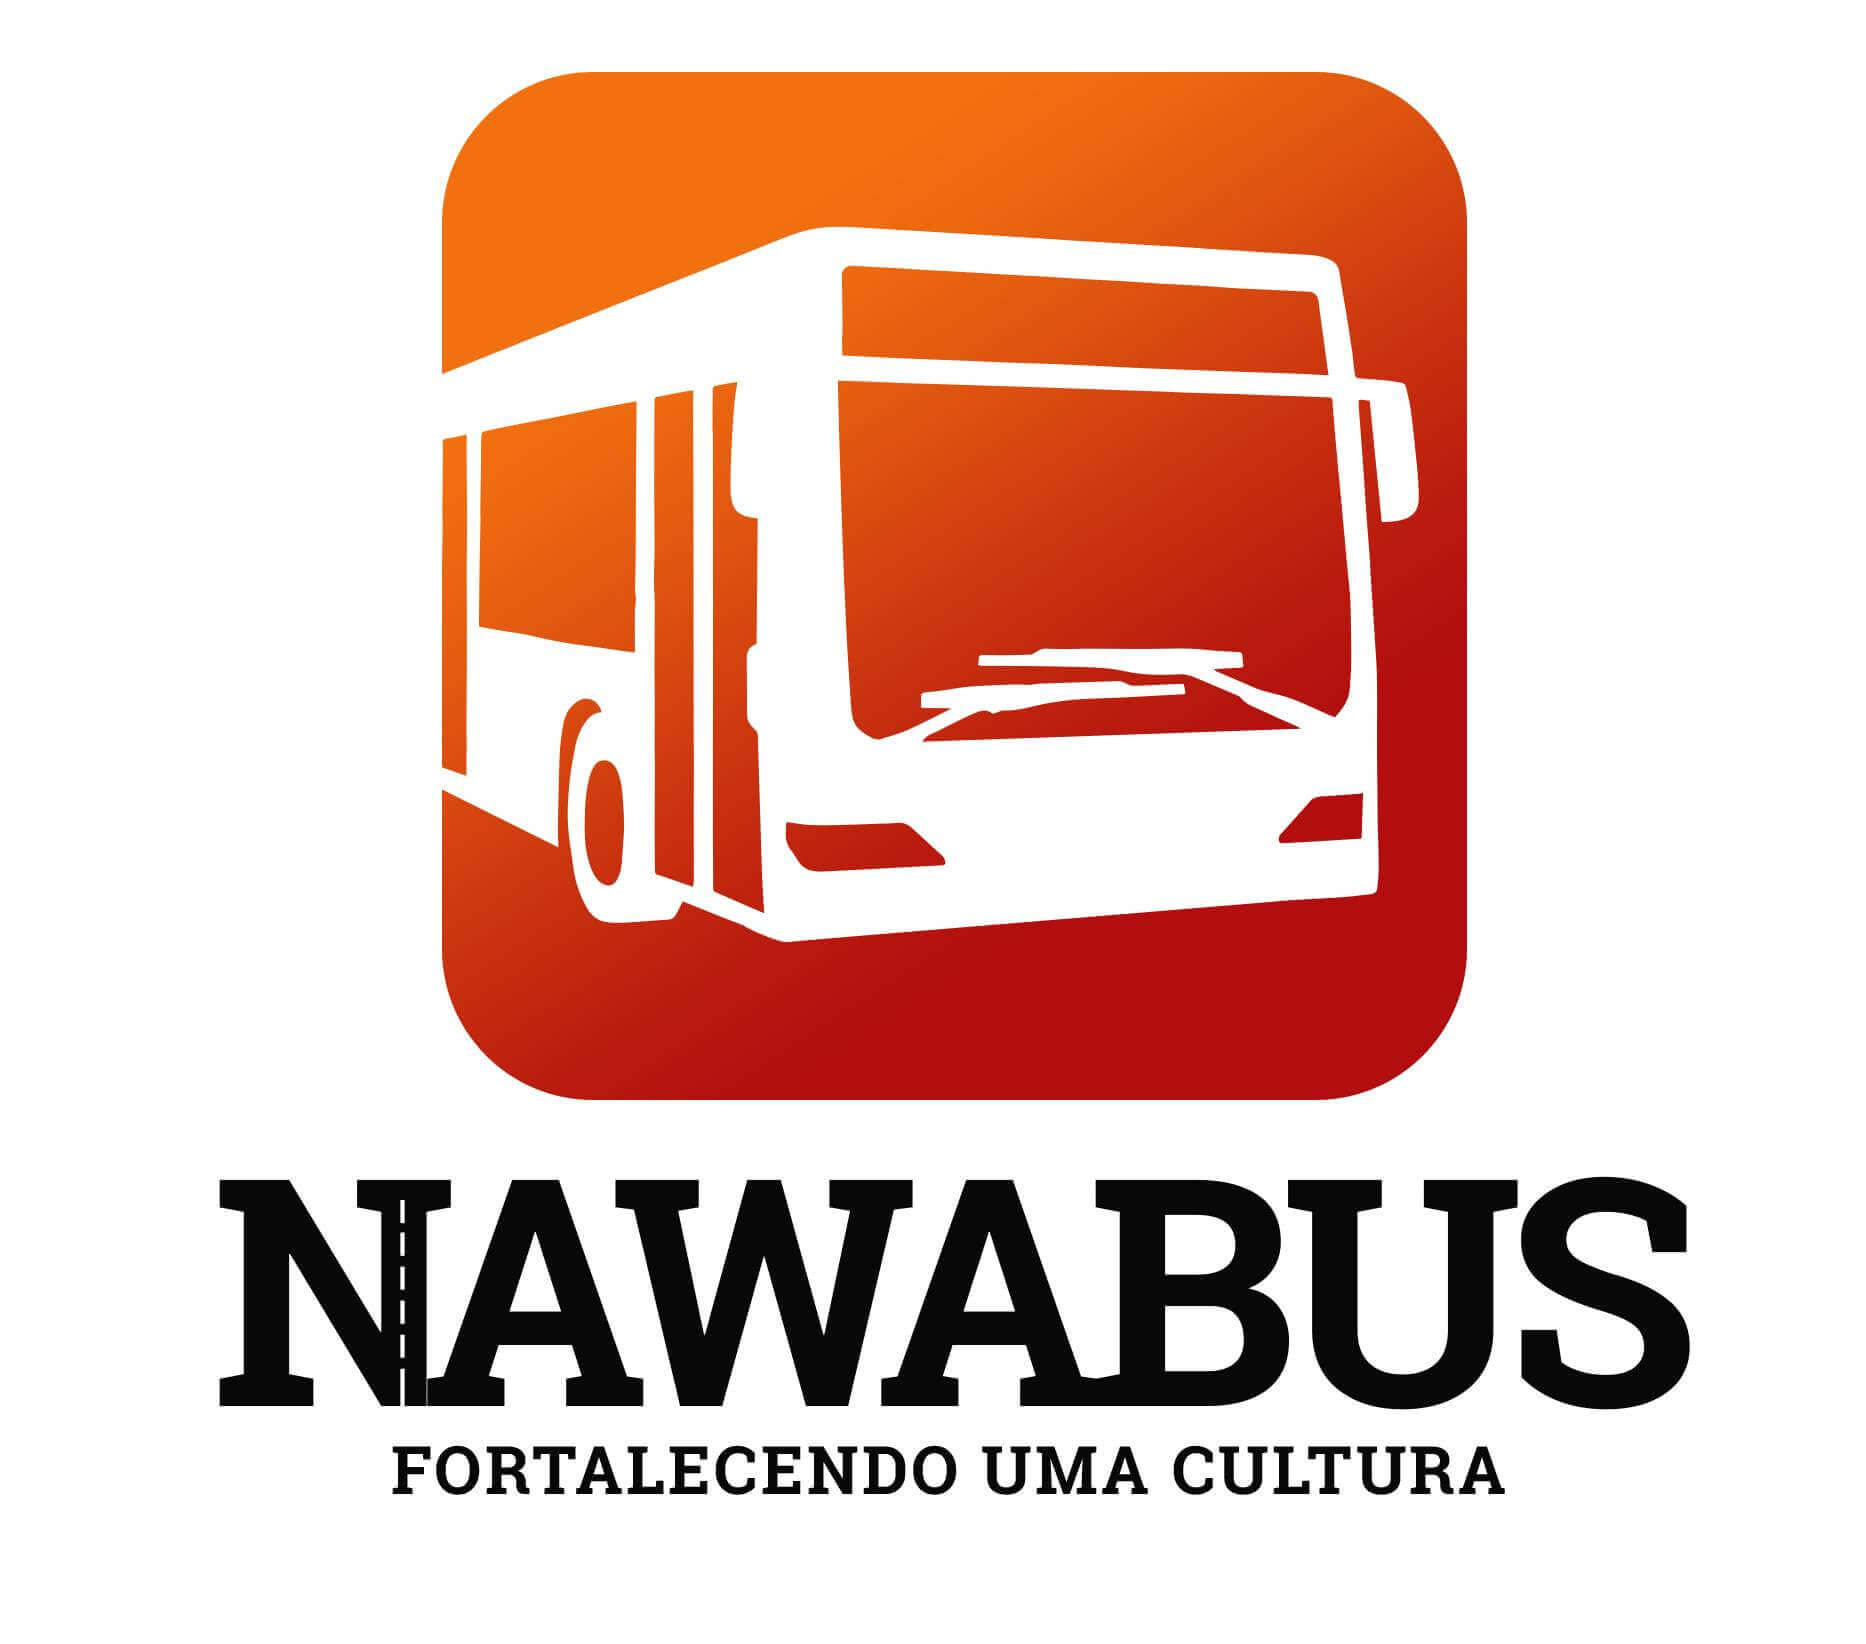 new bus logo